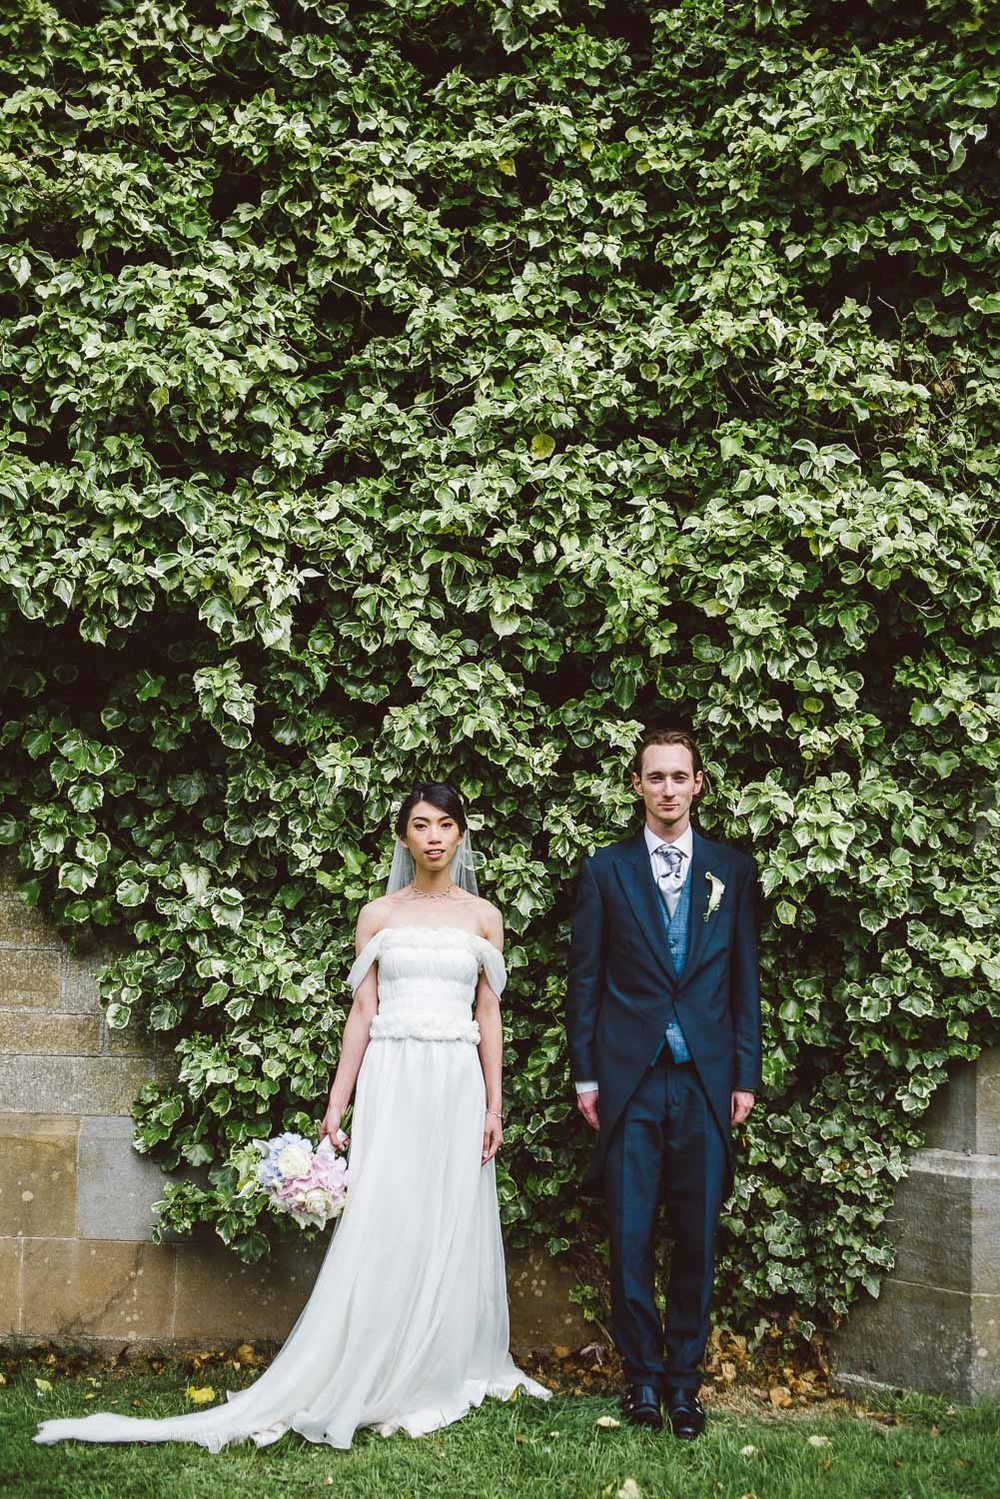 Bride and groom in front of ivy wall. Parkanour Manor House Wedding.